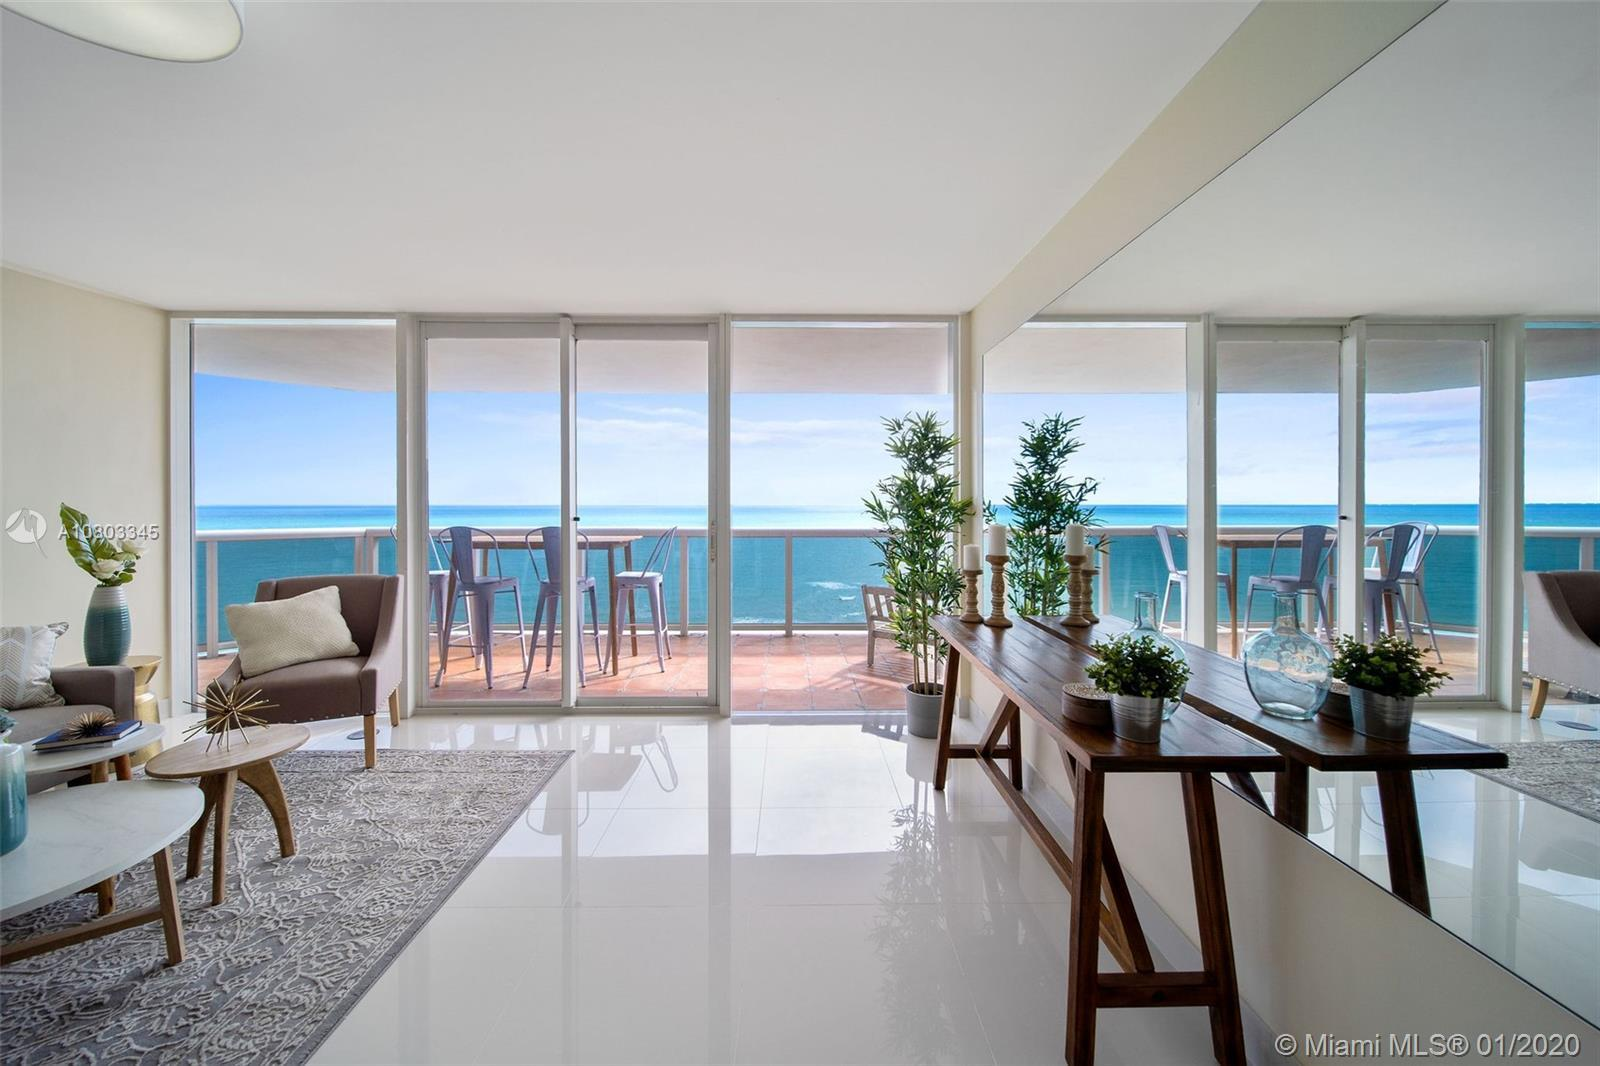 Welcome to your condo palace on the beach! Each remodeled room has views of turquoise Atlantic Ocean